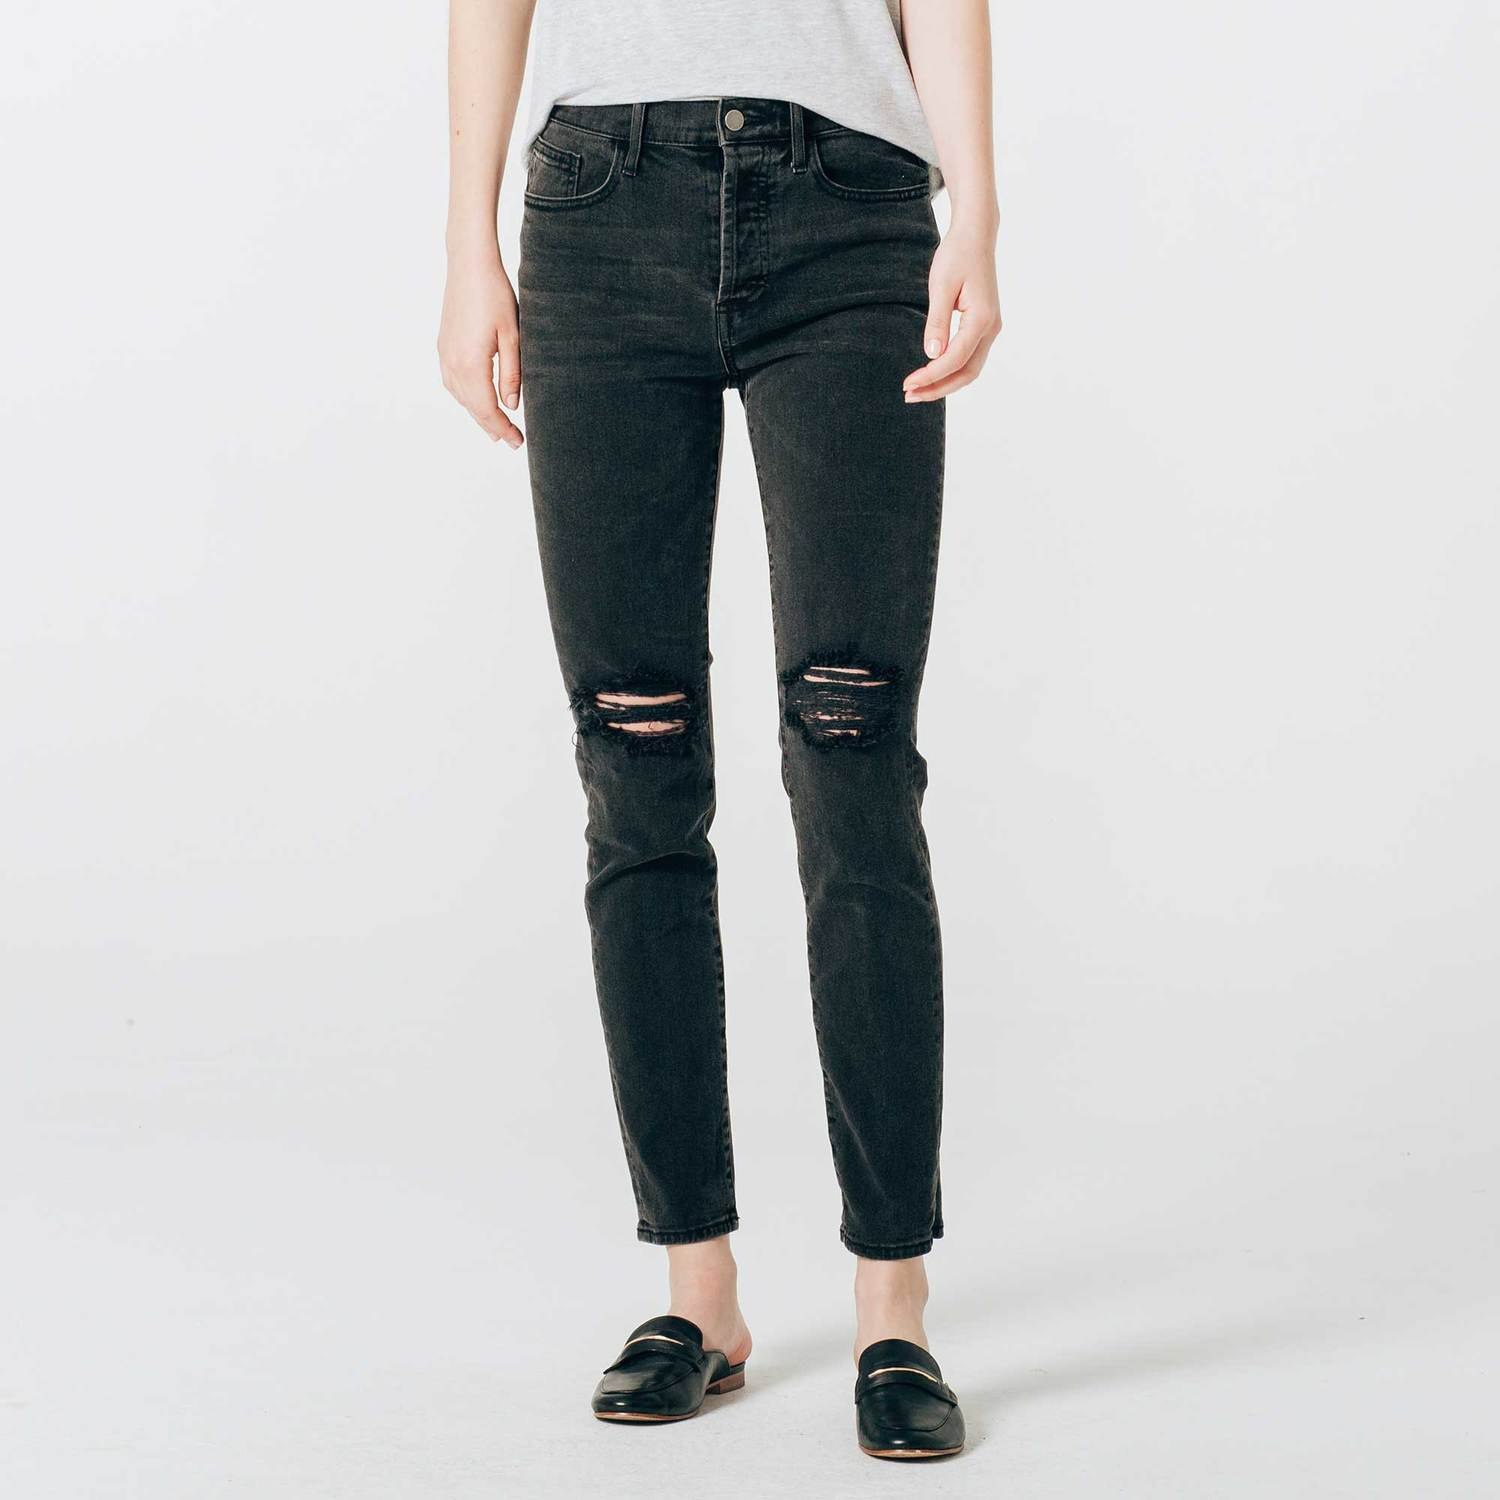 55f88dea94c Womens Ripped High Rise Mom Jeans In Faded Black  95